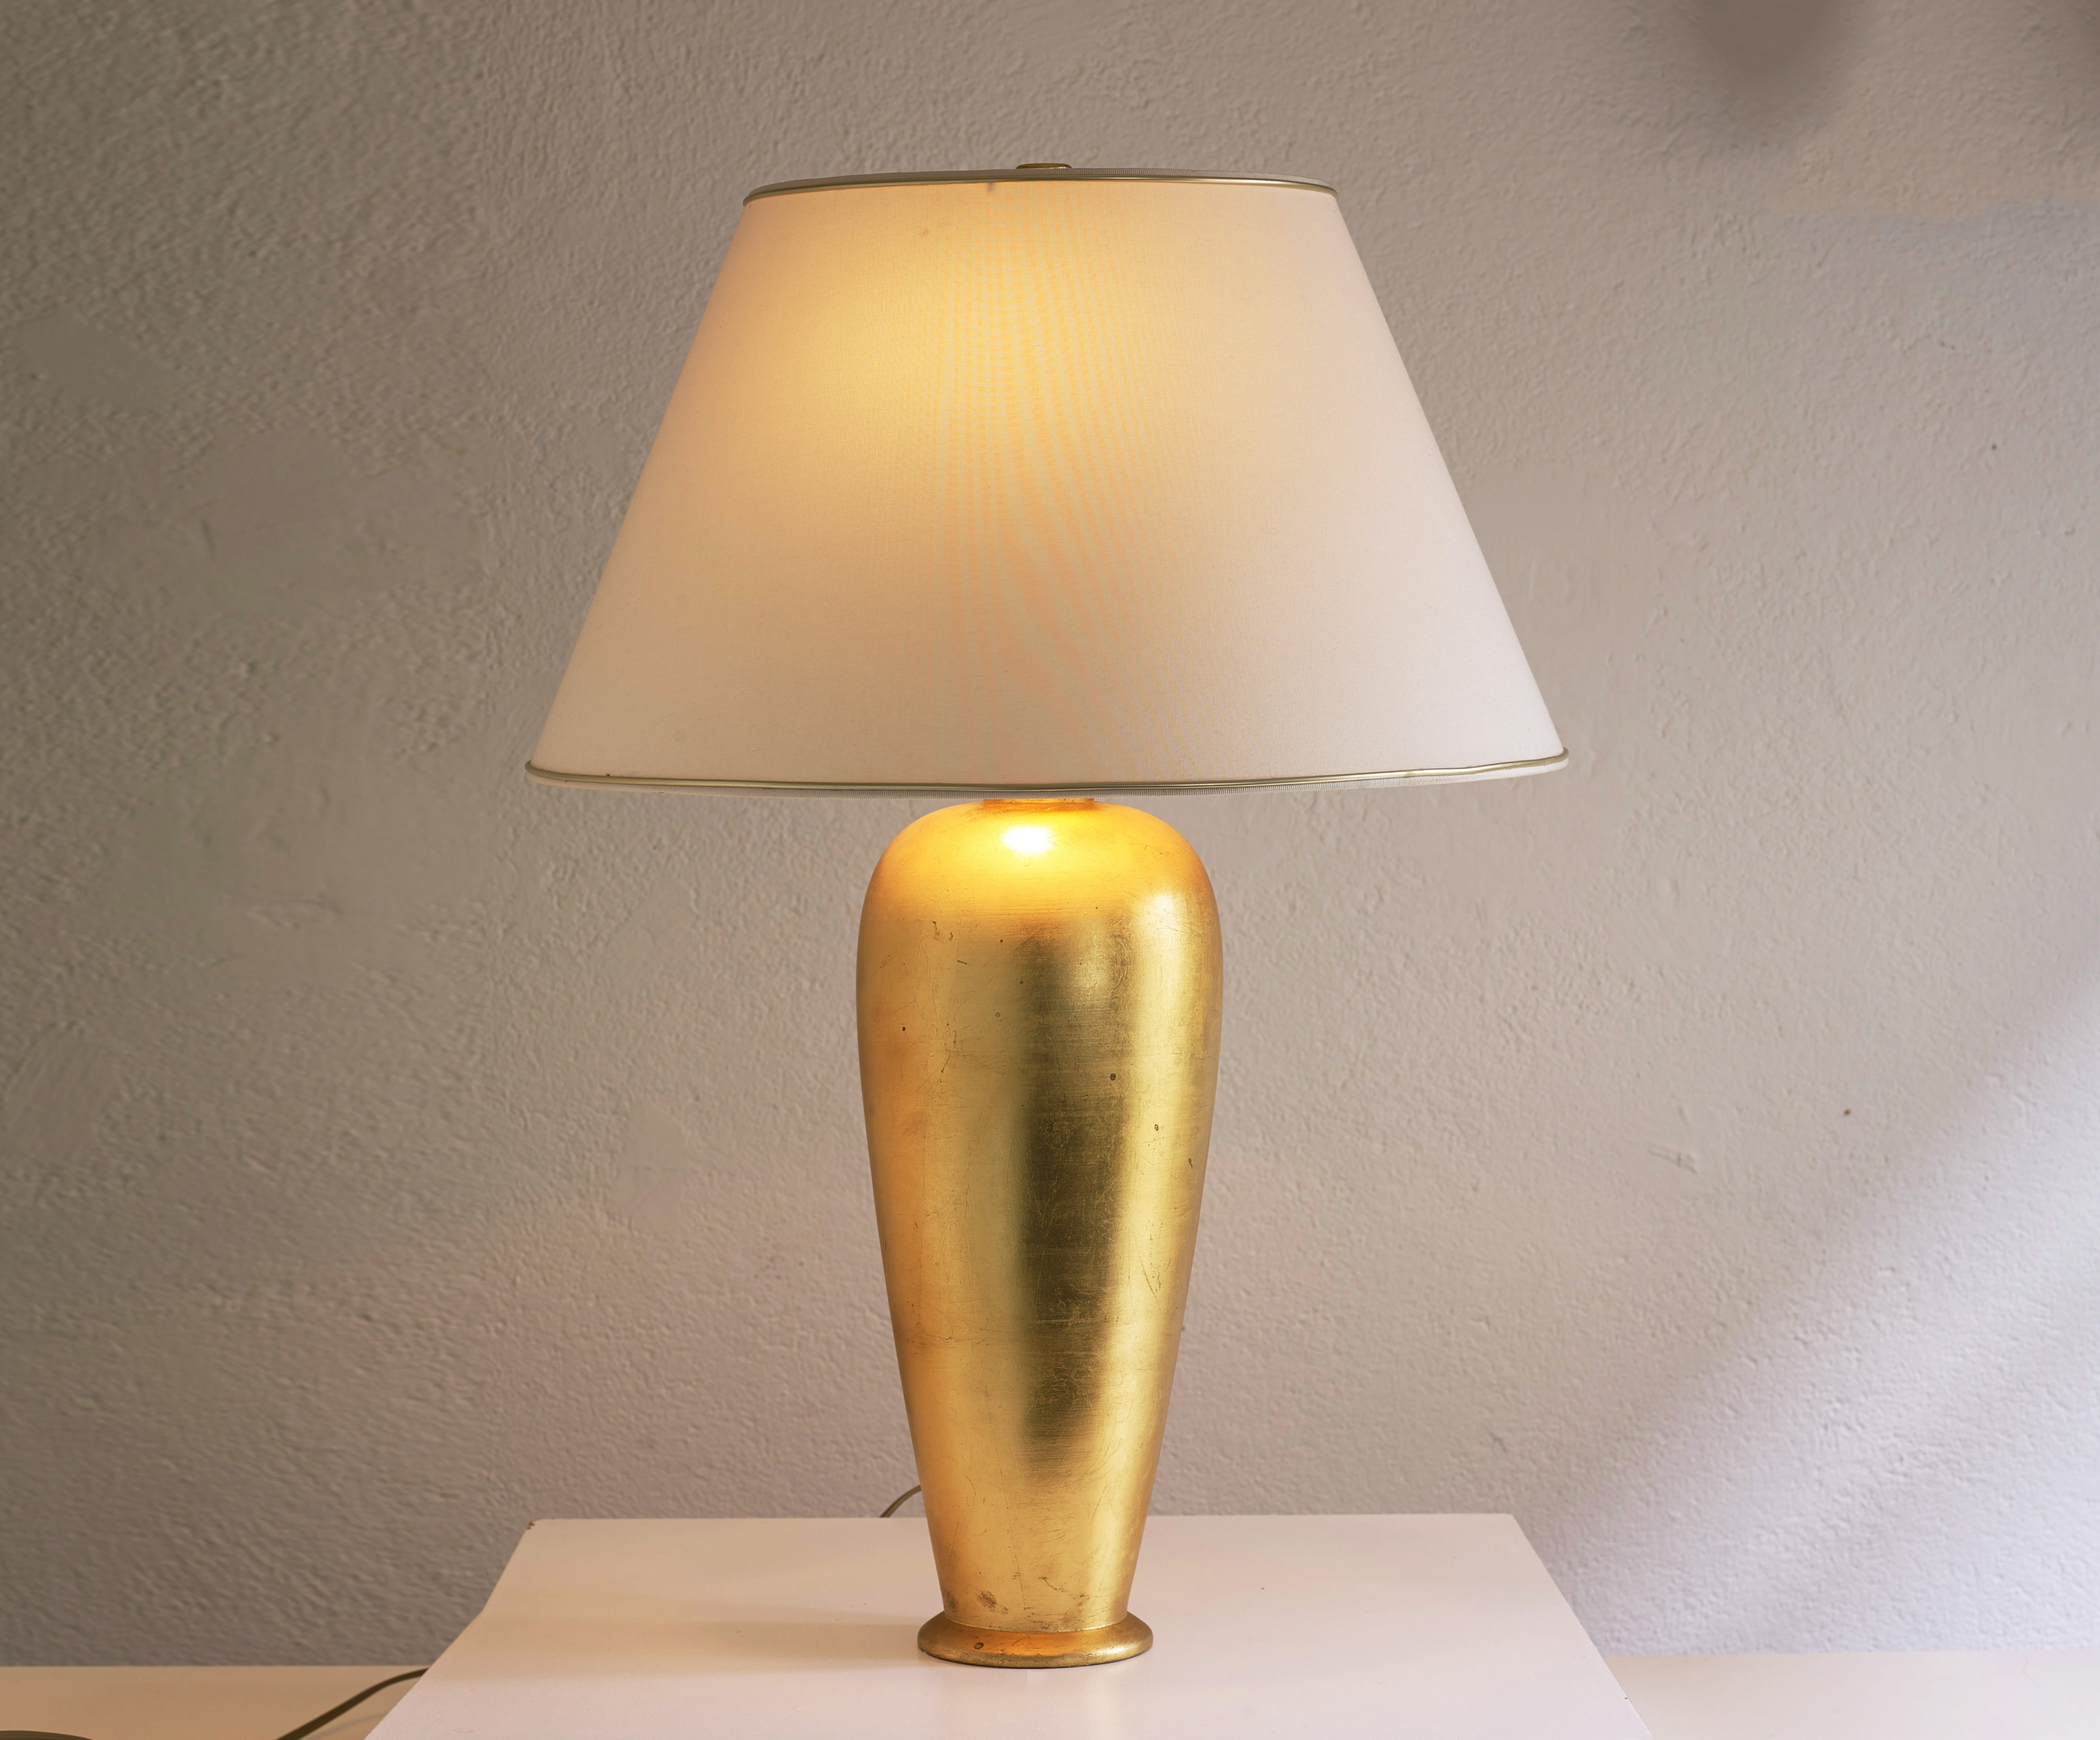 table-lamp-by-ugo-zaccagnini-image-01